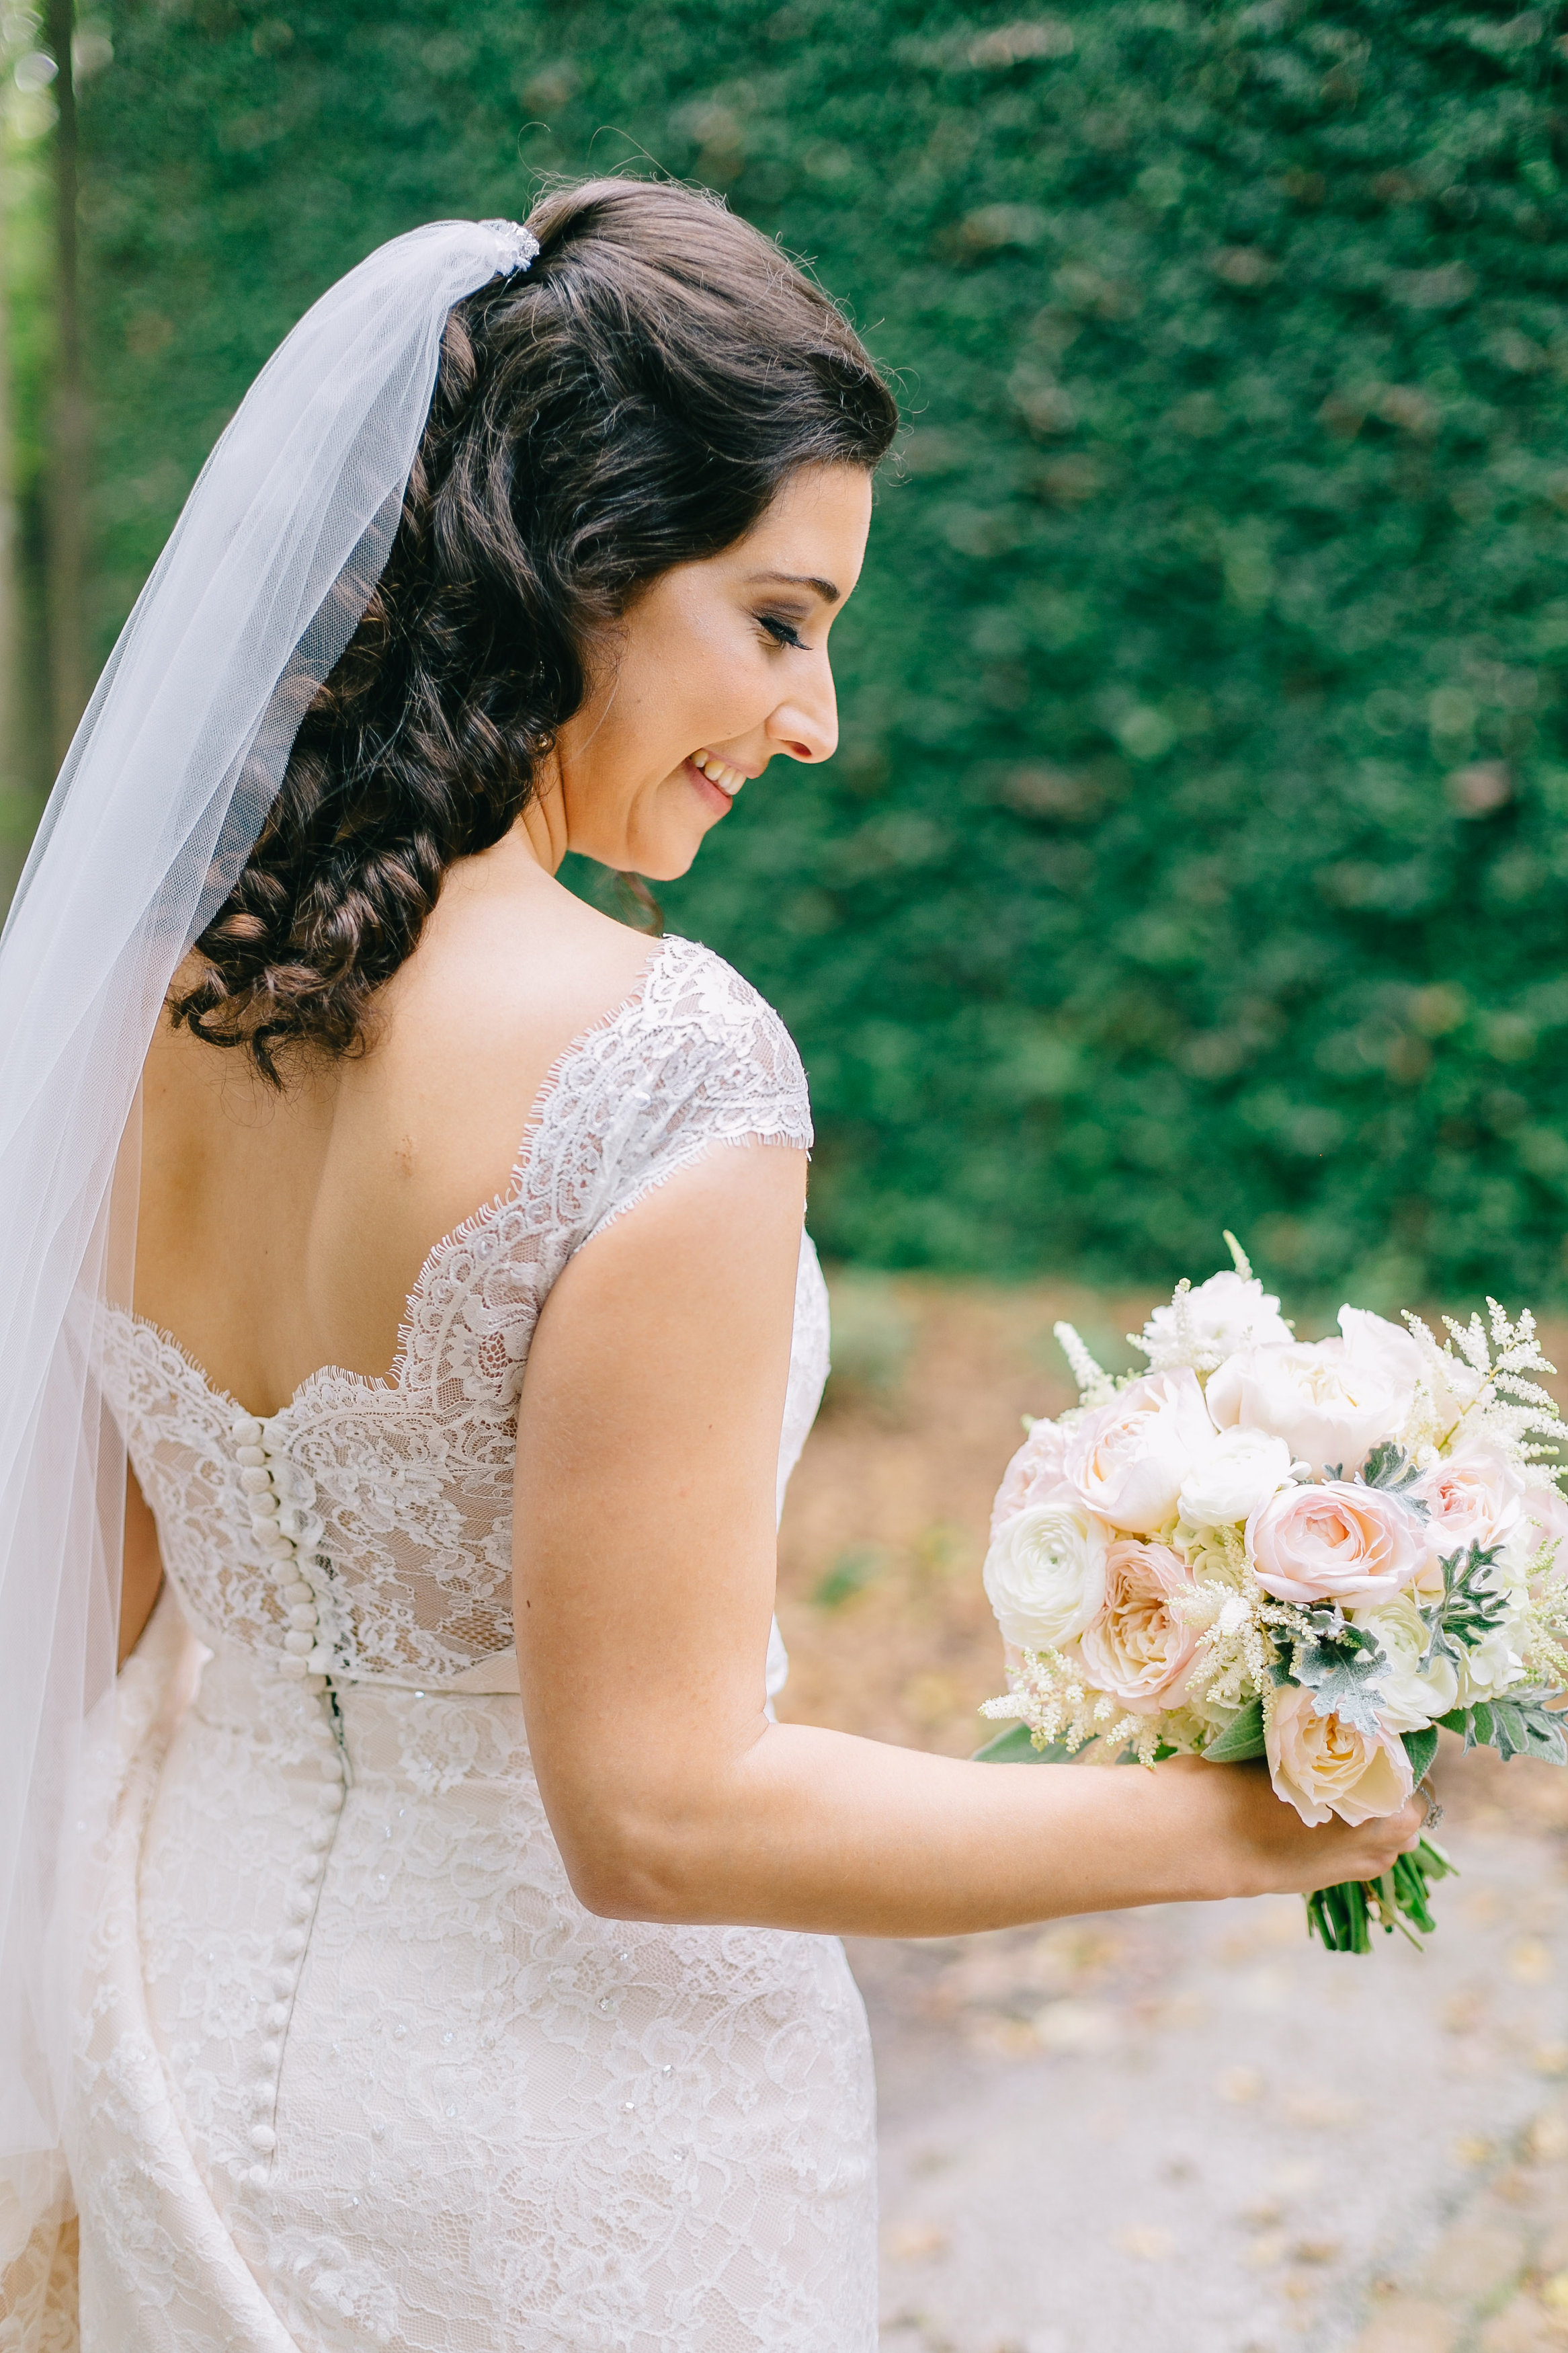 middleton place charleston wedding planners | bridal bouquet in blush pink and ivory tones with blush pink and white David Austen garden roses, white ranunculus, lambs ear, white astilbe, and white hydrangea